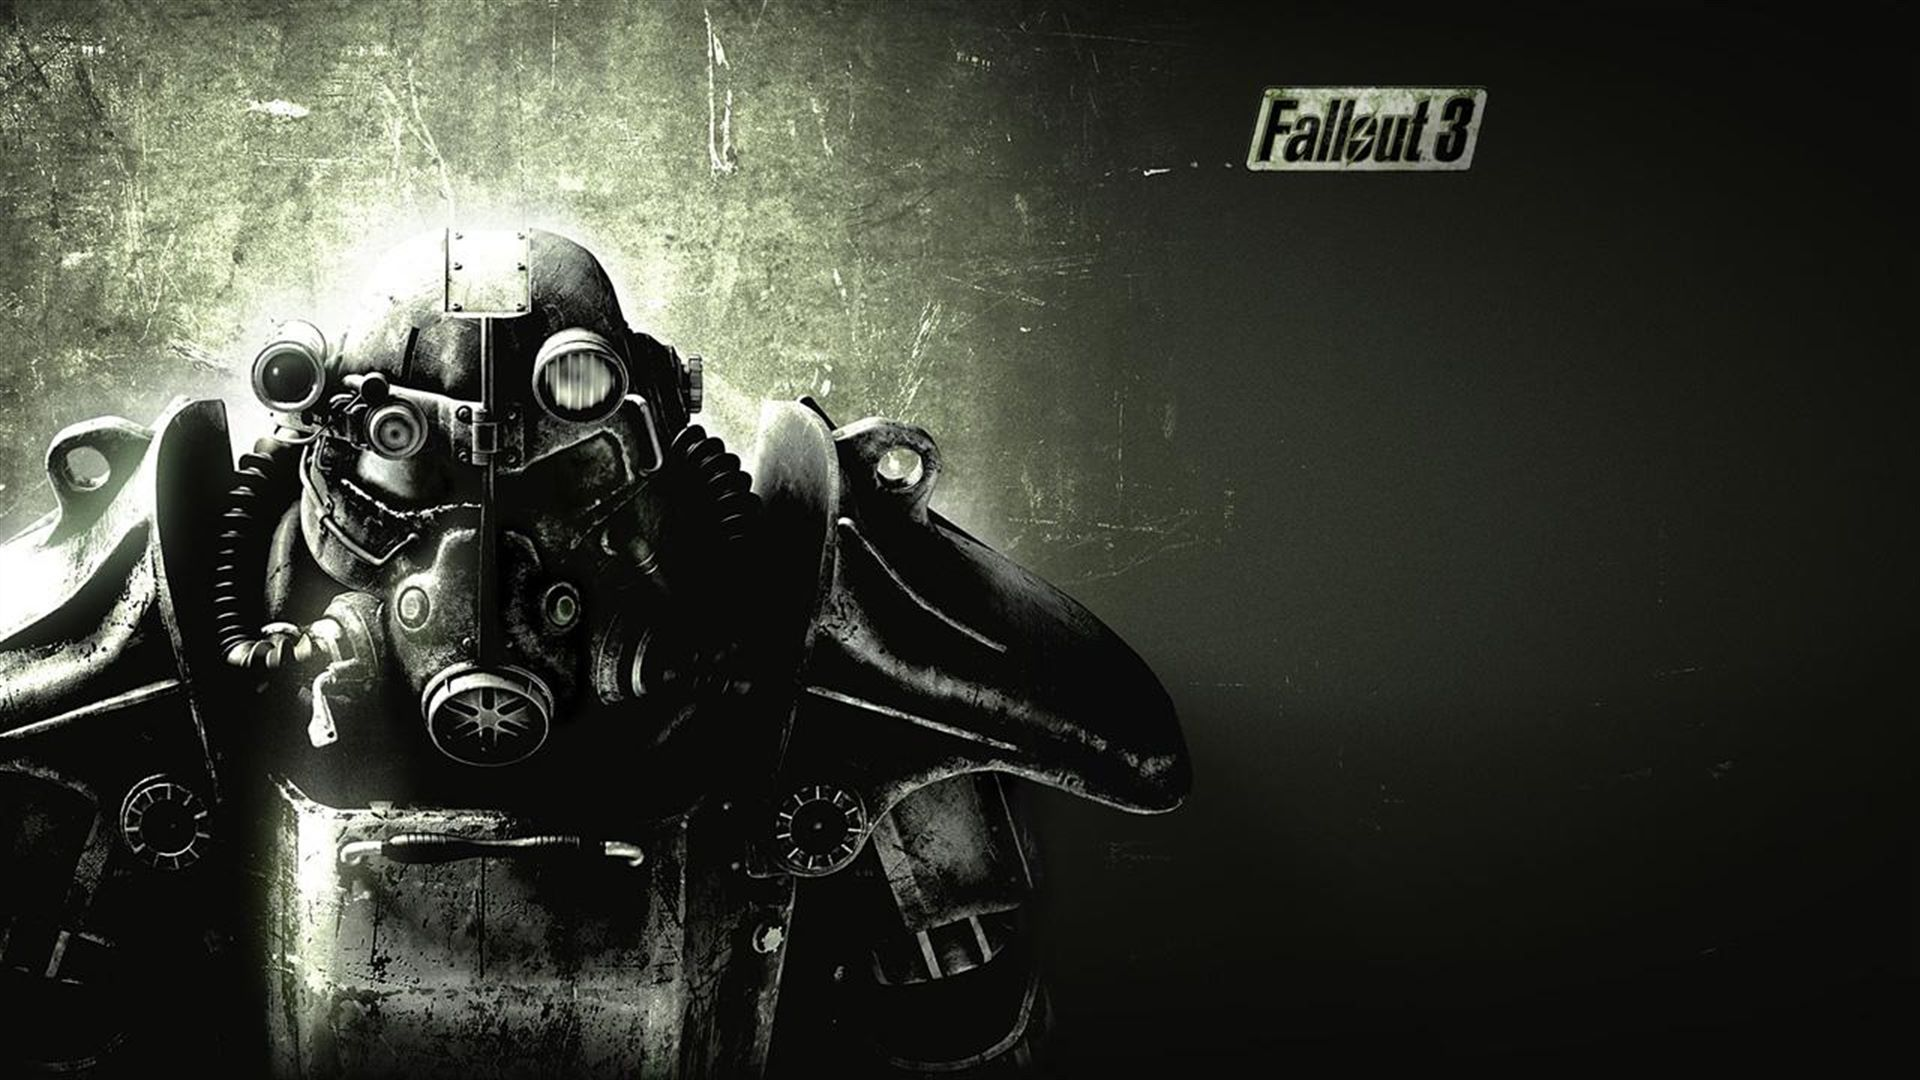 Fallout 3, A Ten Year Reunion